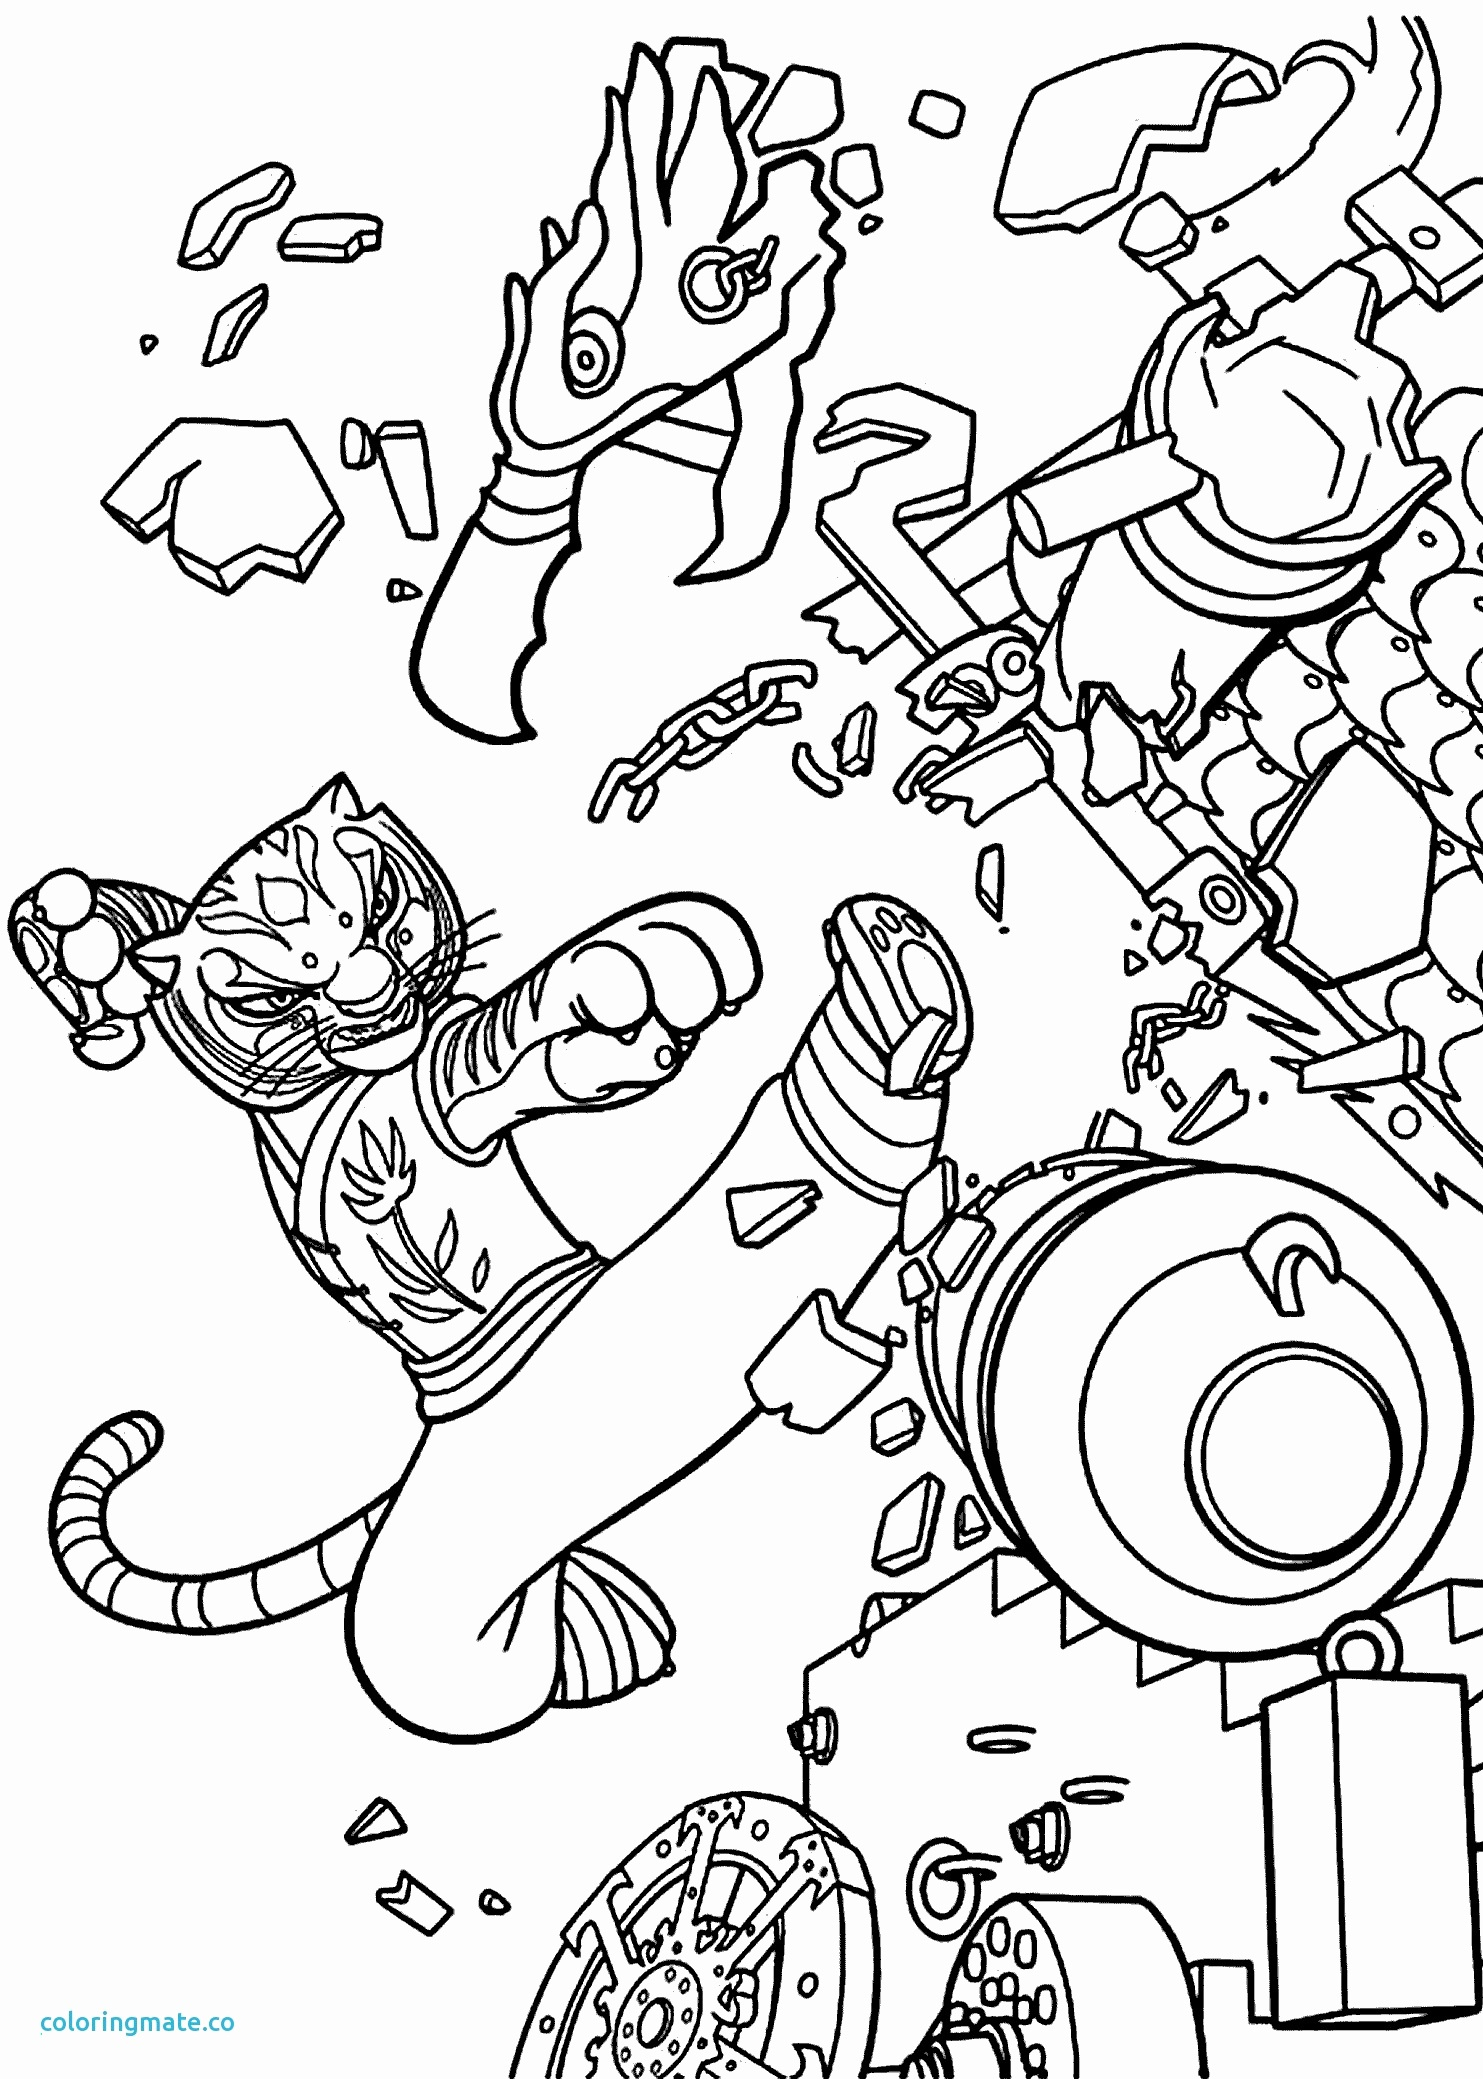 garden of eden coloring pages Collection-0d Garden Eden Coloring Pages Awesome Kung Fu Coloring Pages 20-r